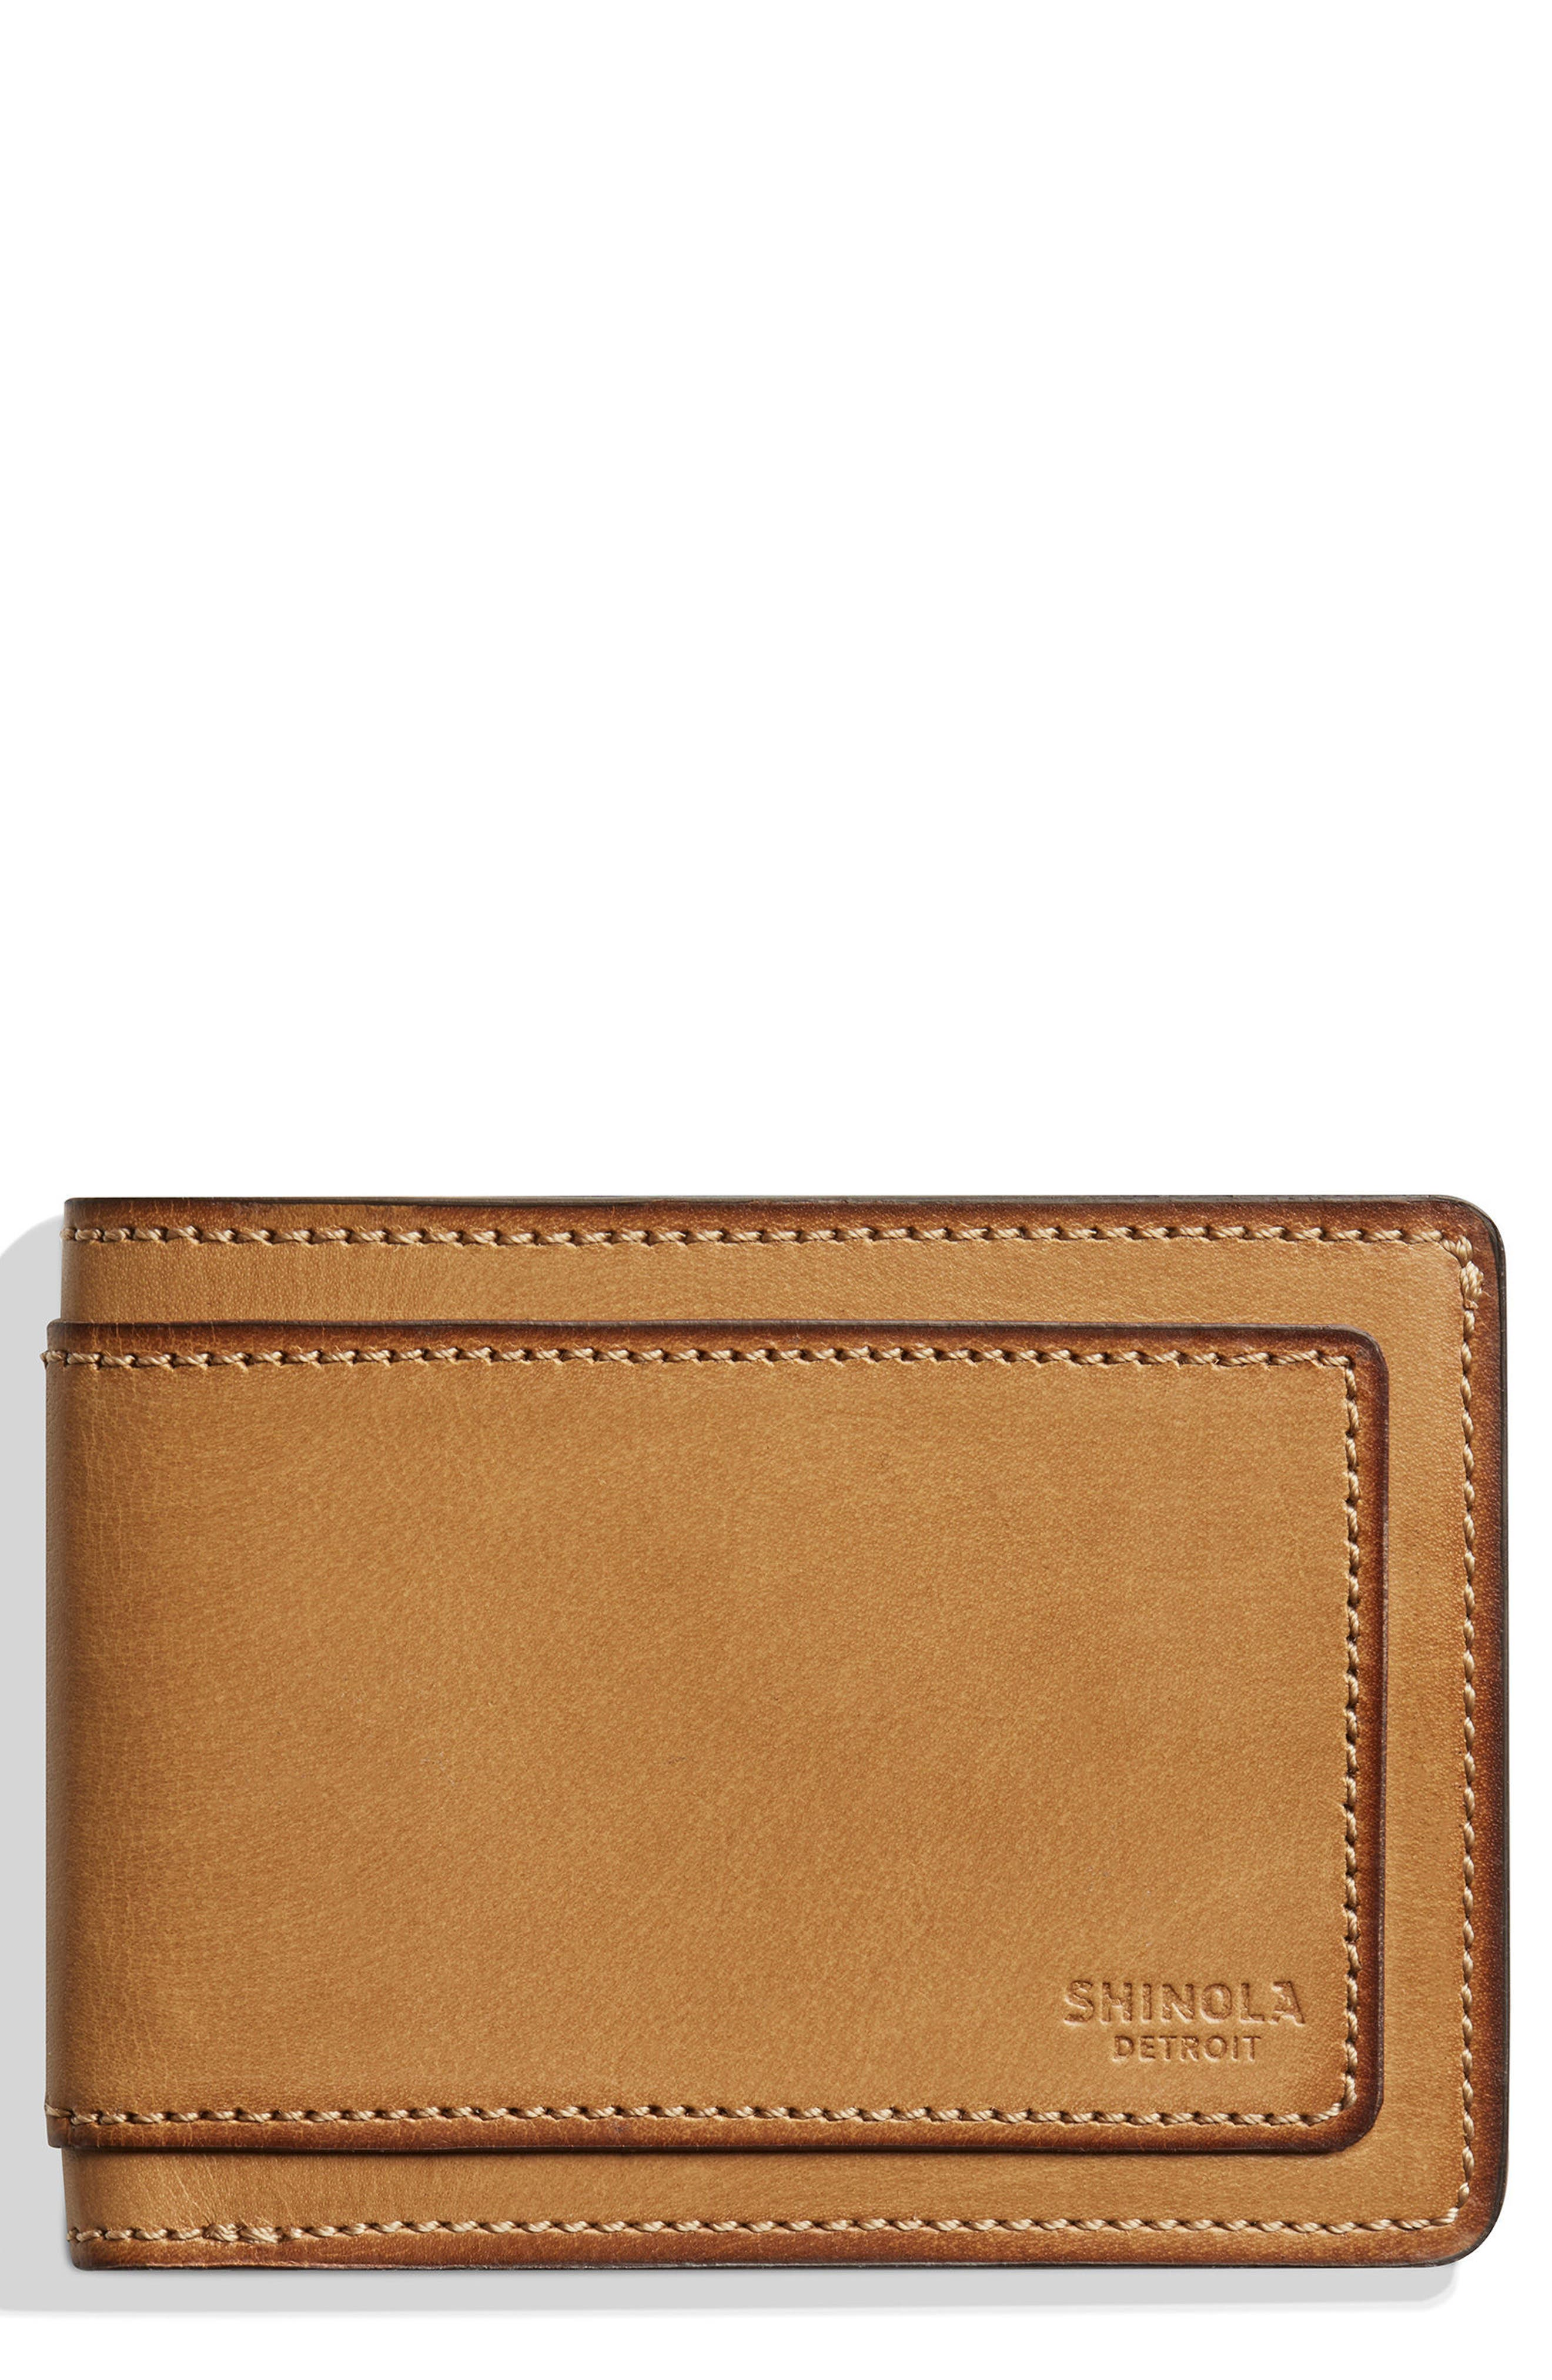 Outlaw Wallet,                             Main thumbnail 1, color,                             Sand